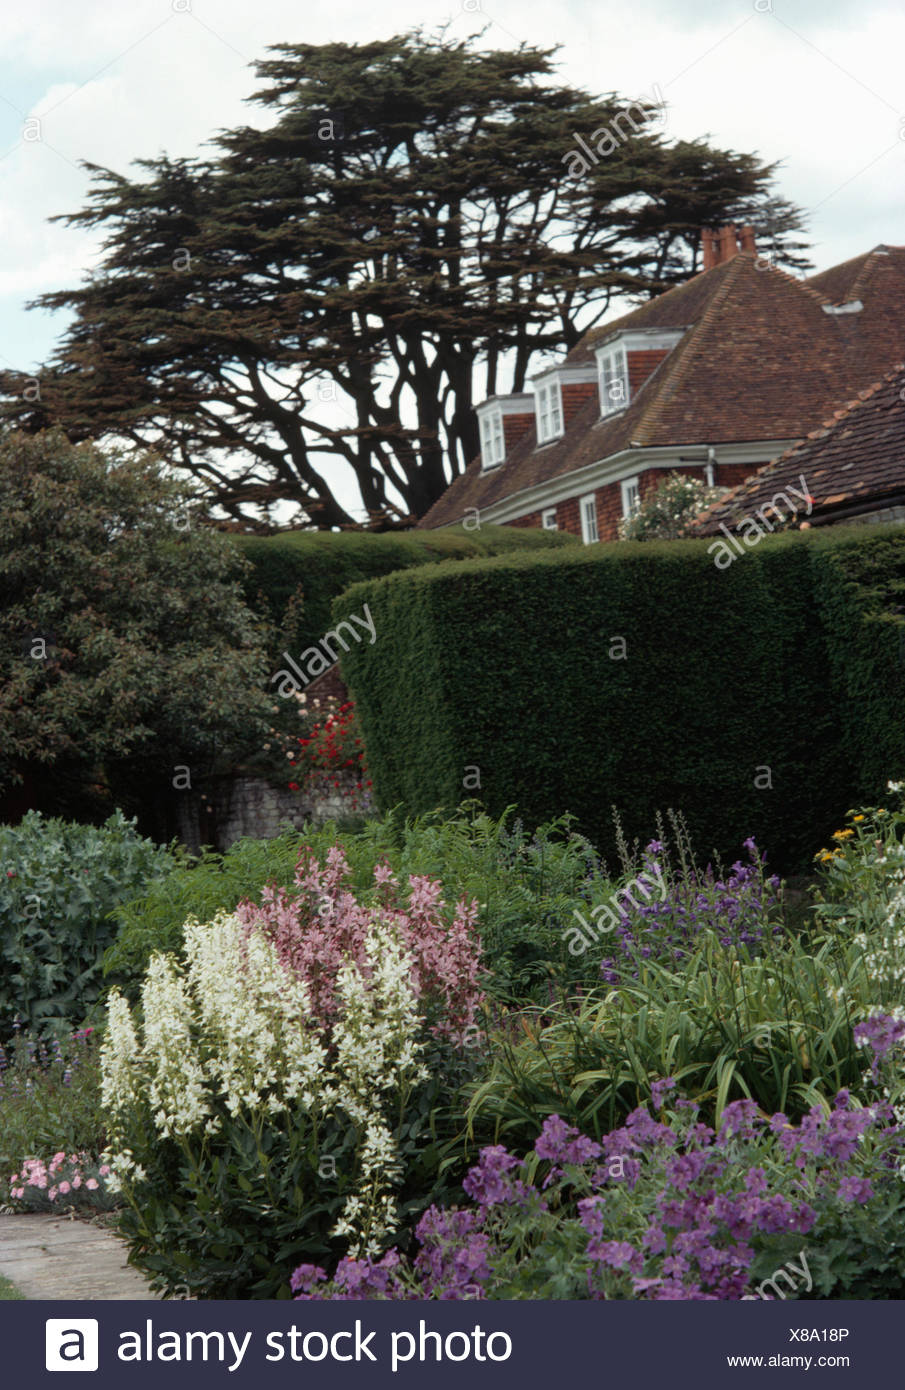 Blue geraniums and white perennials in border in garden with a clipped hedge and a cedar tree Stock Photo